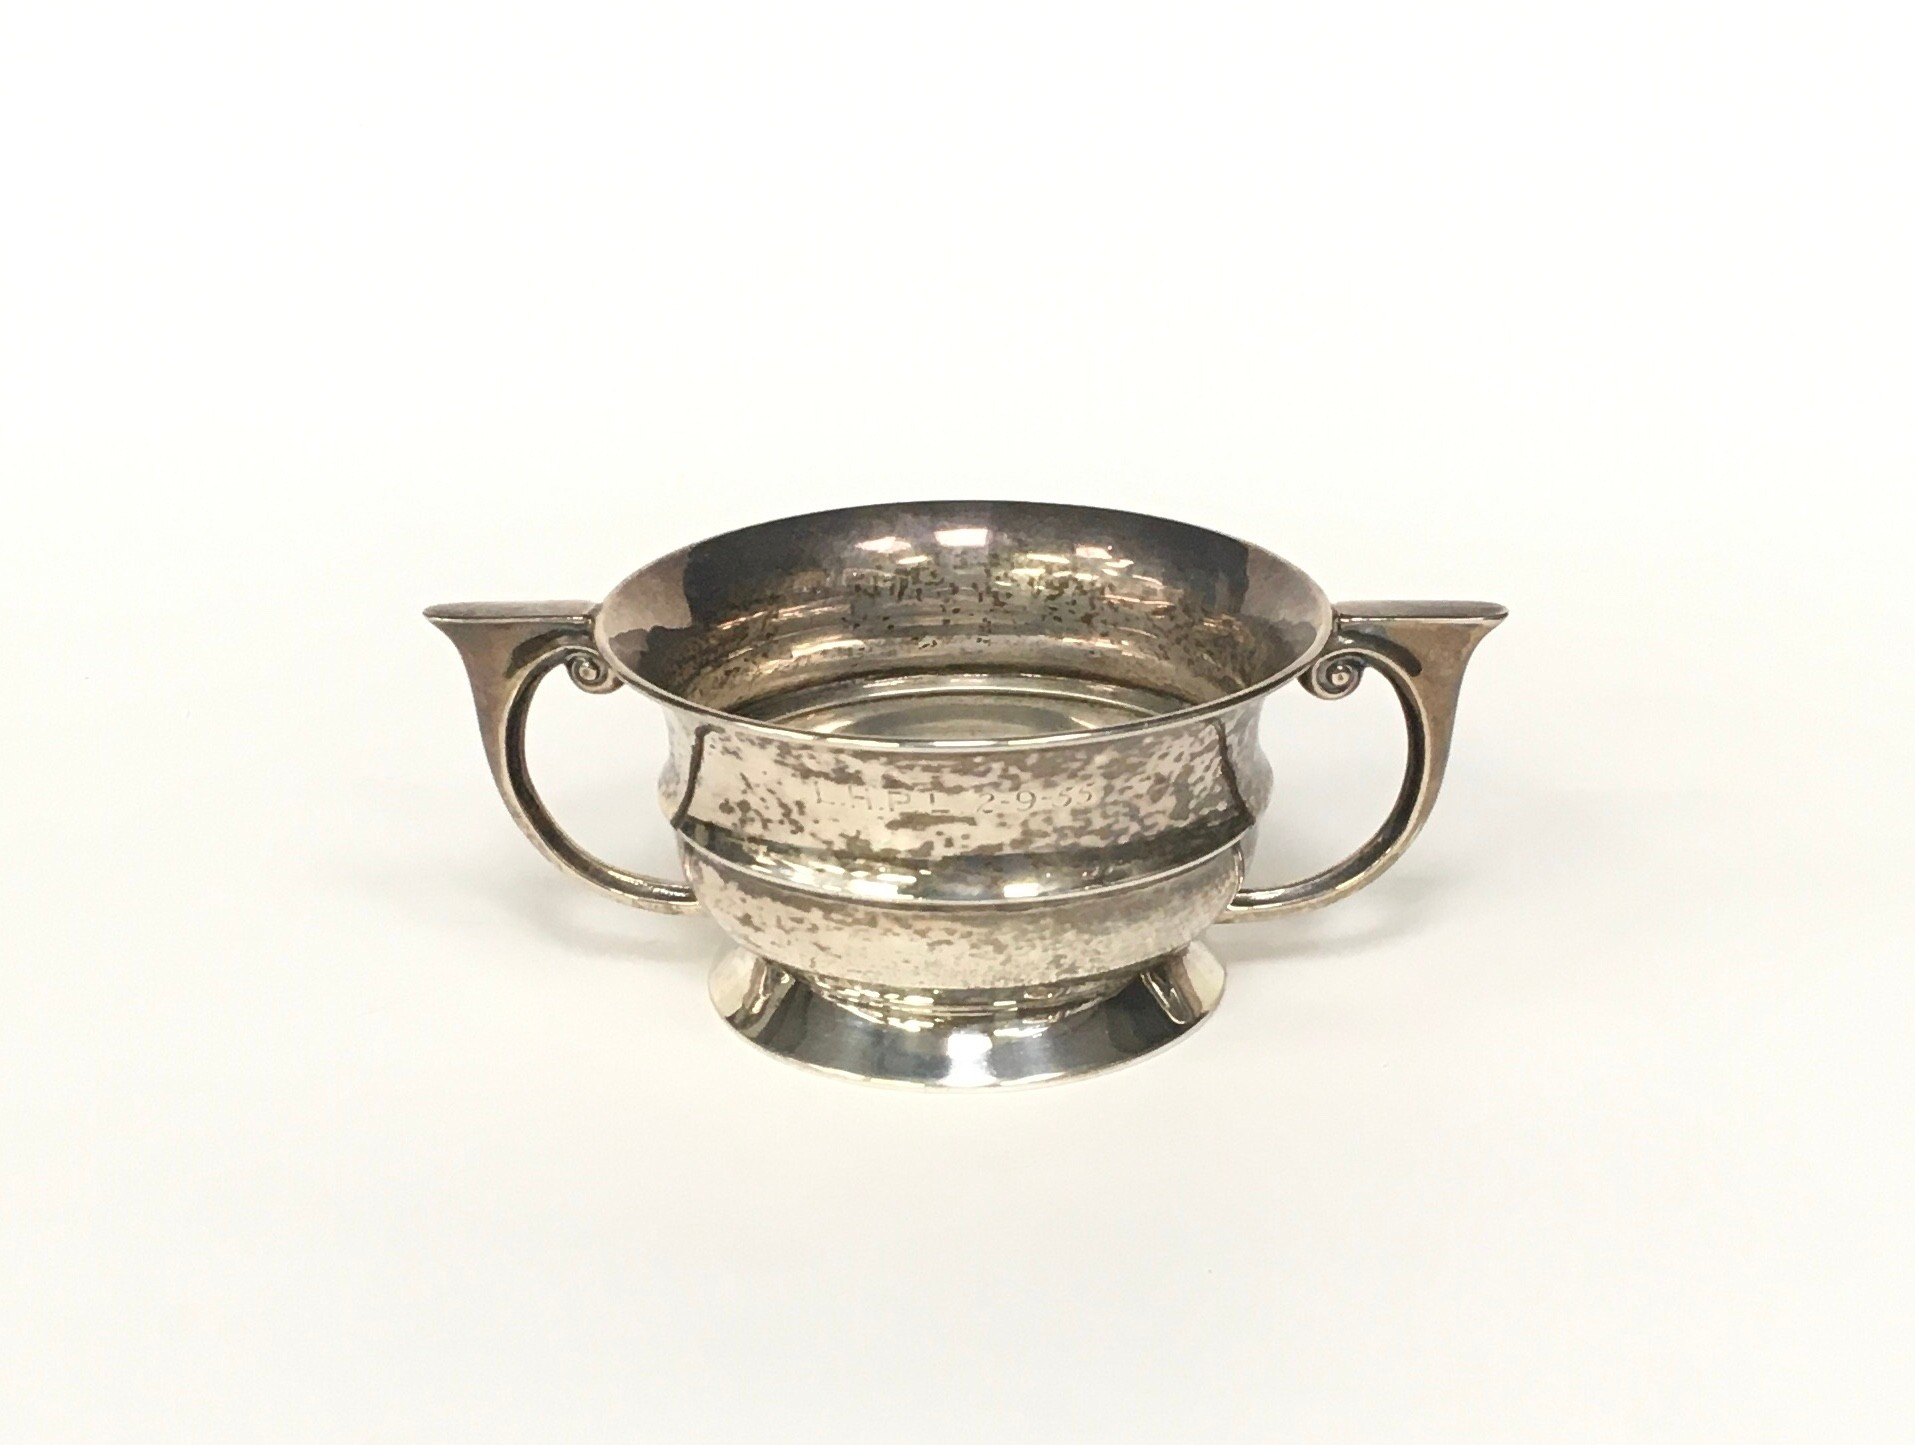 Silver twin handled bowl 100gm - Image 3 of 4